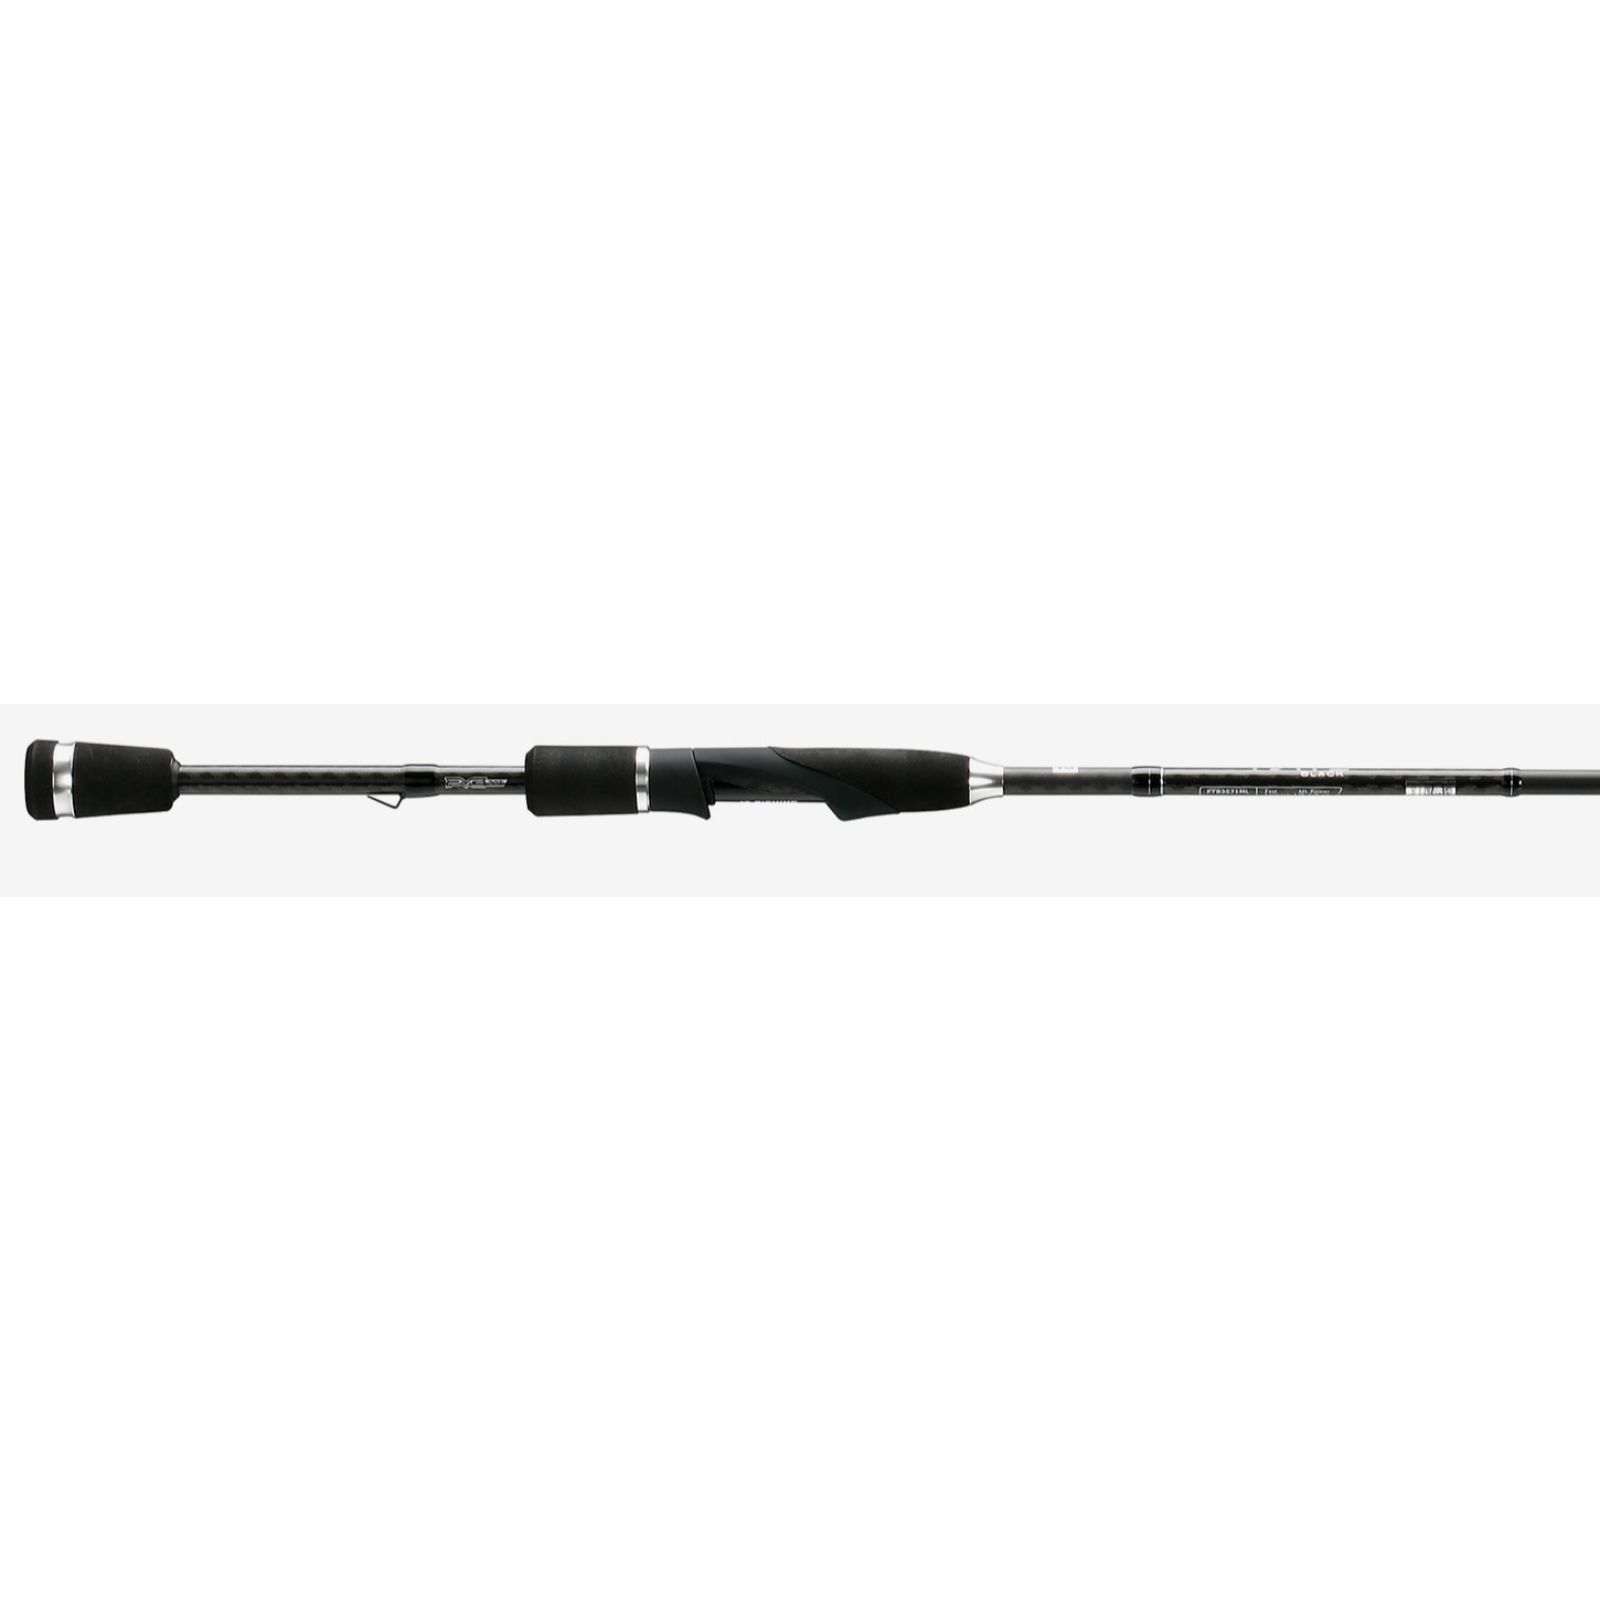 13 Fishing Fate Black 7ft 1in MH Spinning Rod